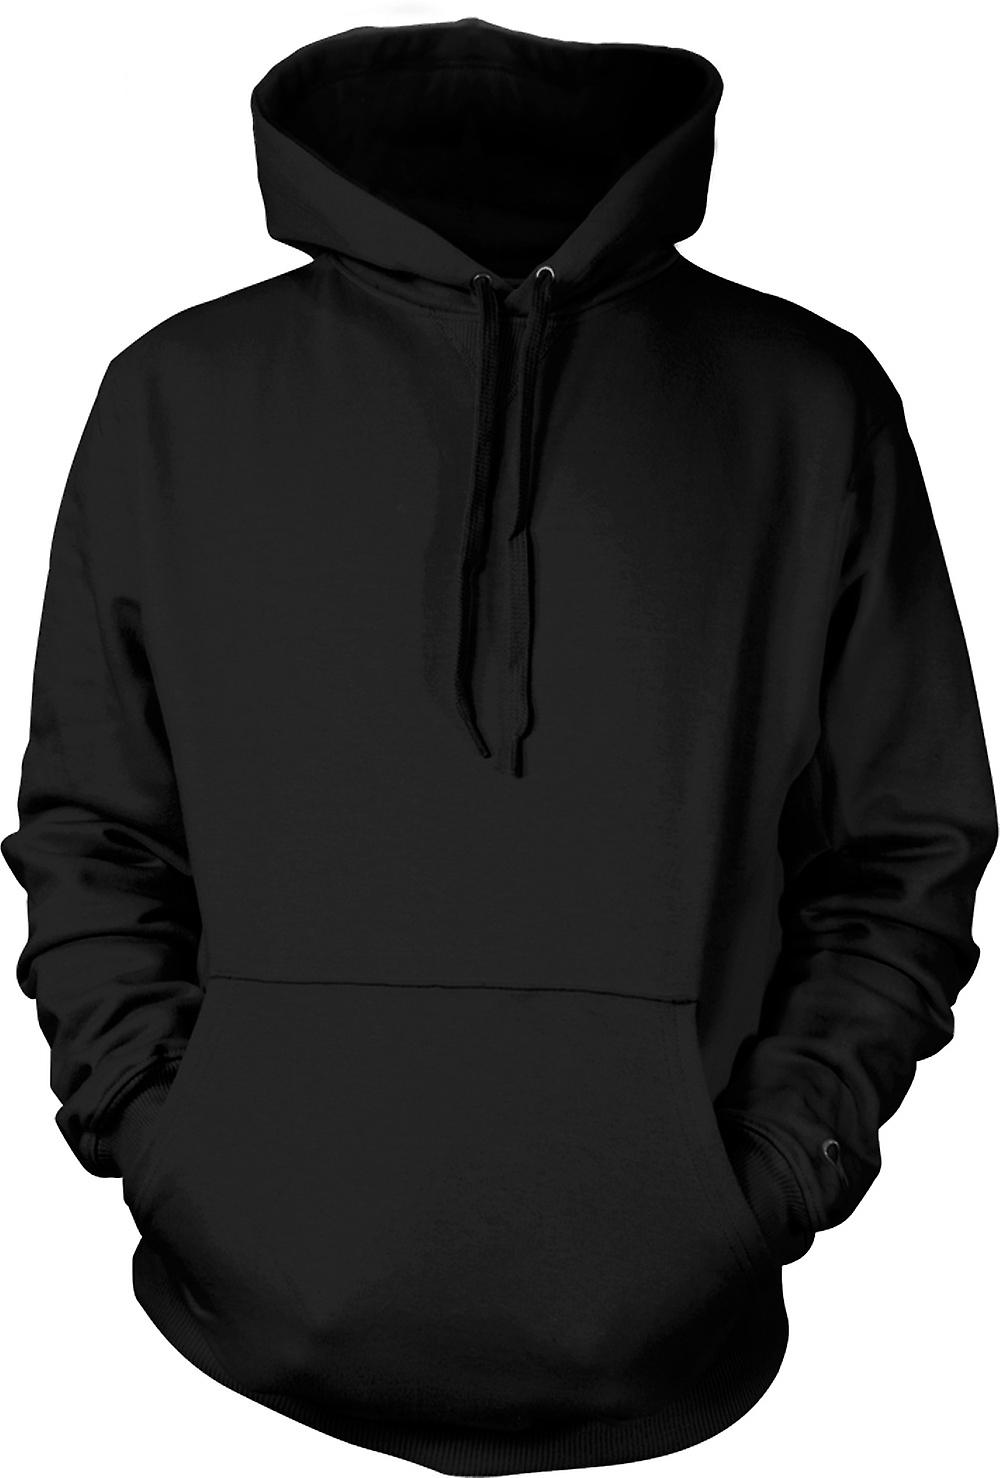 Mens Hoodie - Laugh Now But One Day We'll Be In Charge Banksy